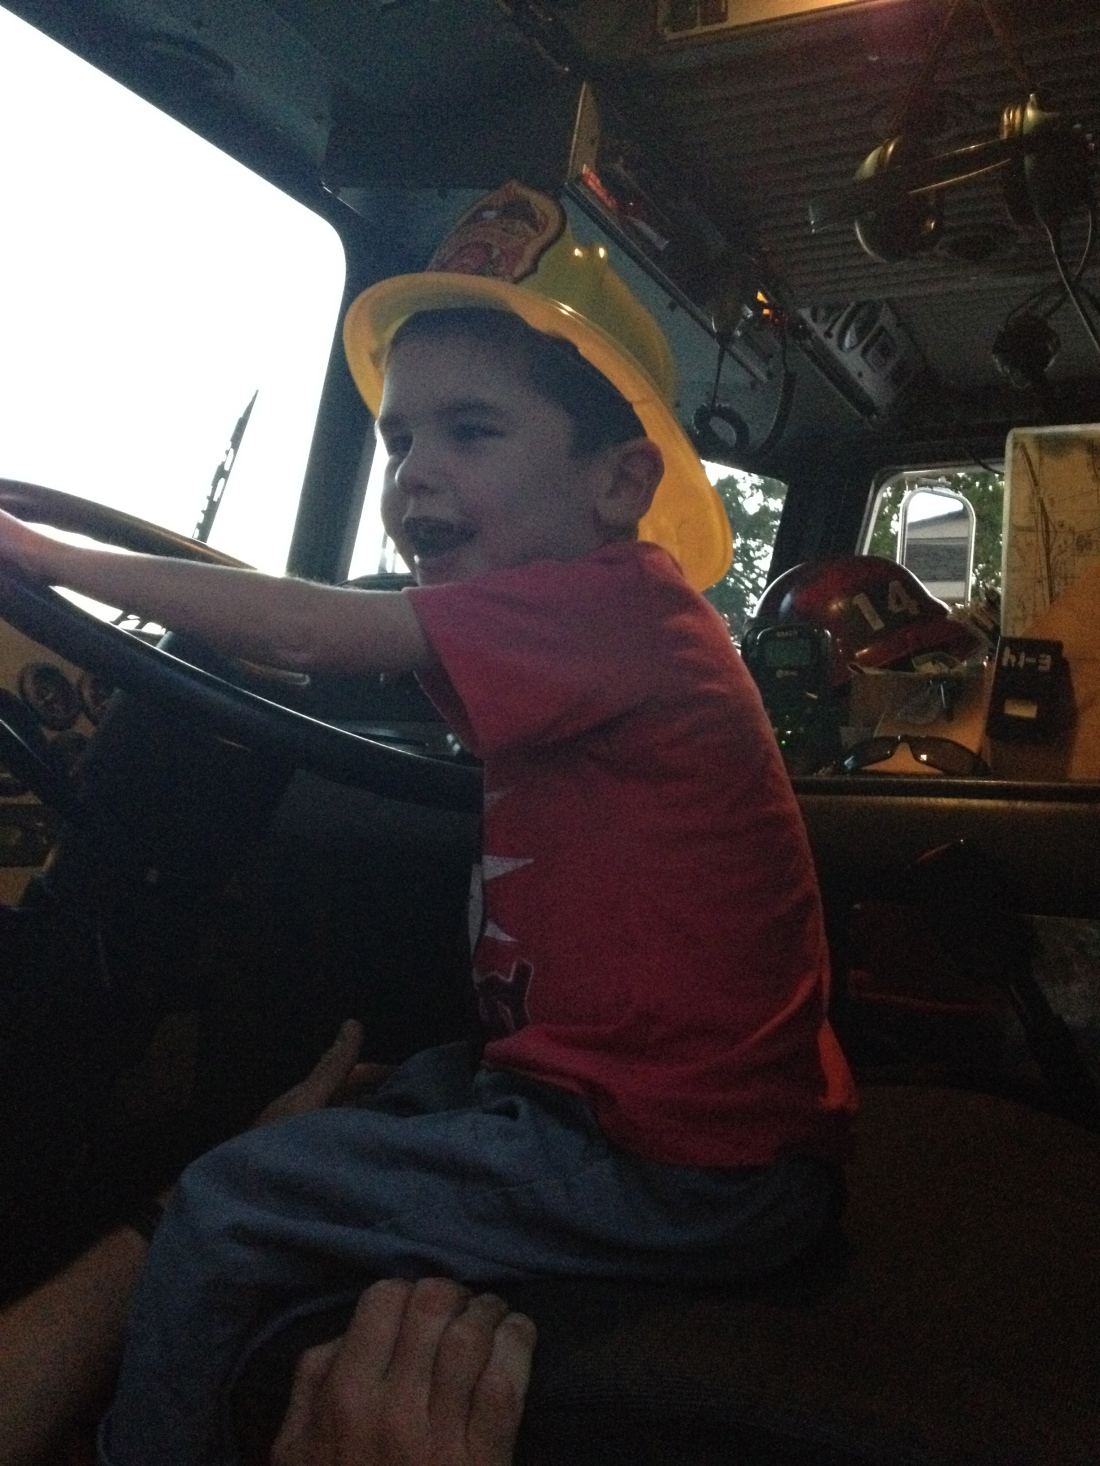 A visit to our neighborhood fire station to drop off some treats led to a turn in the engineer's seat!!  Woo Hoo!